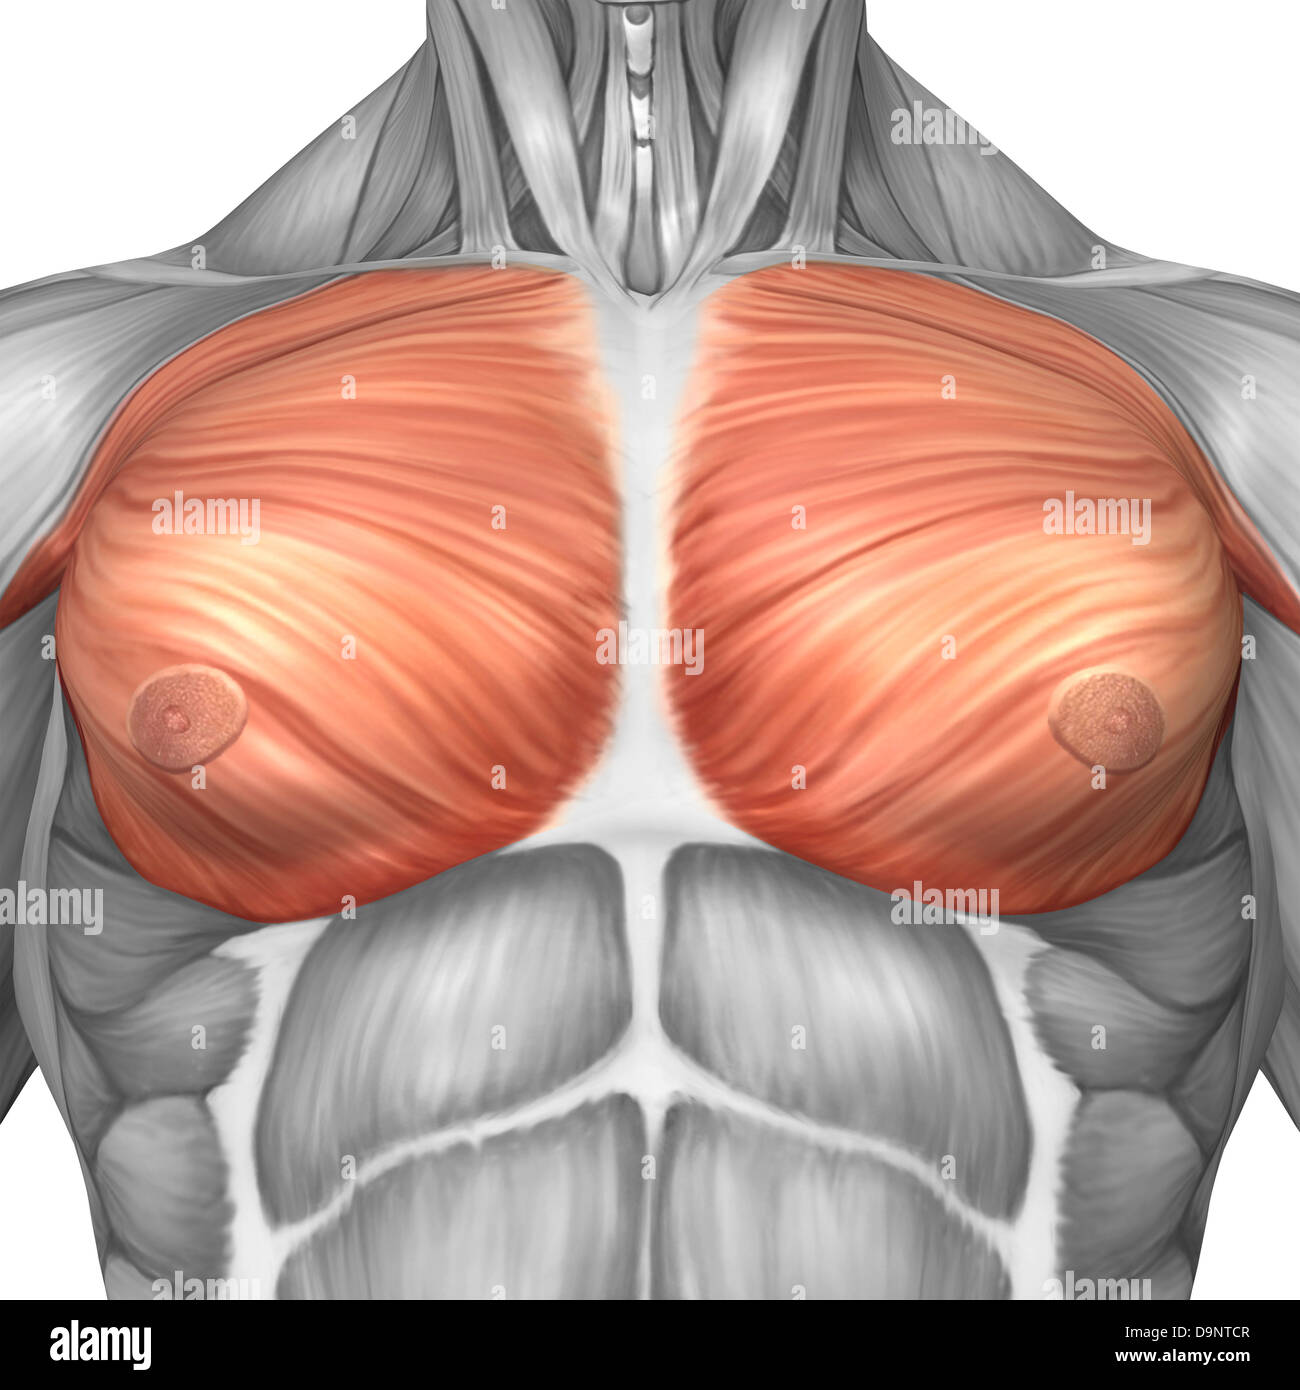 Anatomy of male pectoral muscles Stock Photo: 57643175 - Alamy